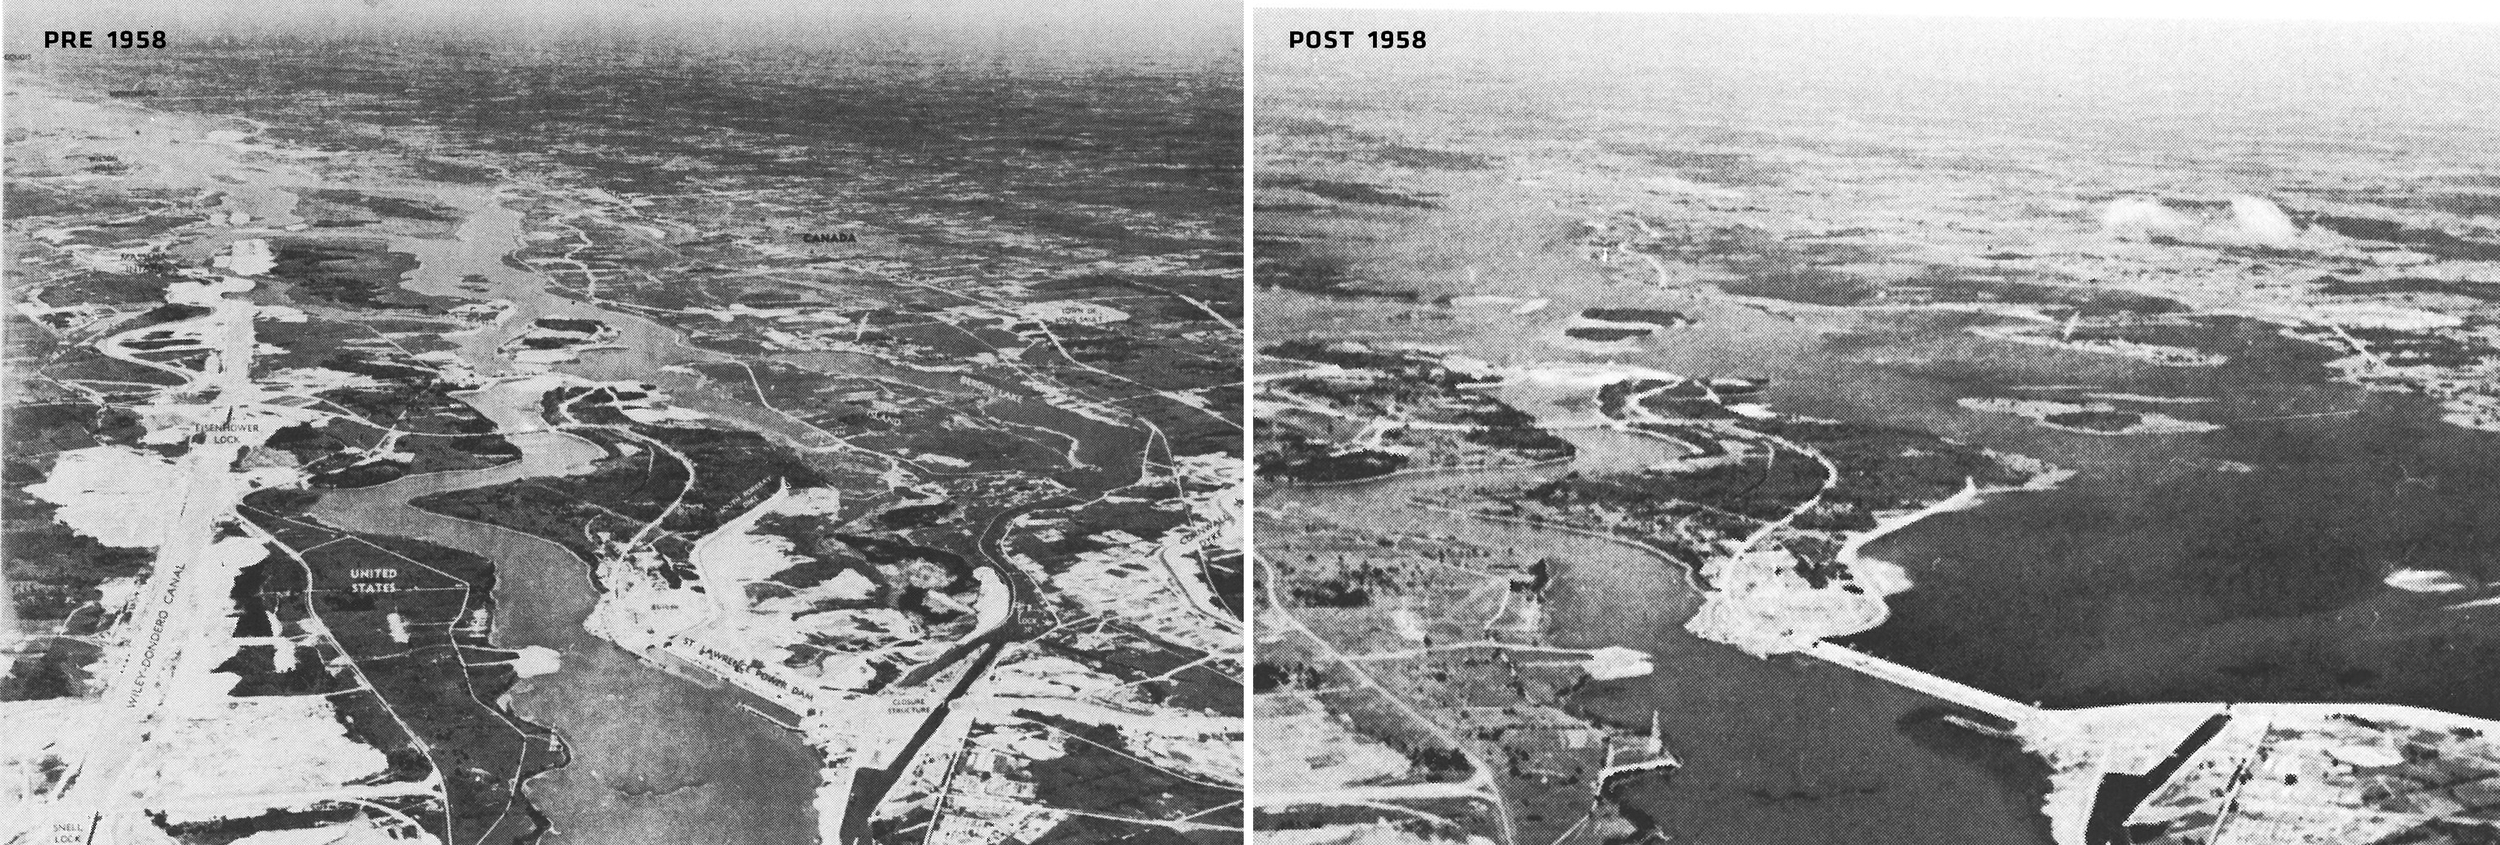 After decades of negotiation, the Moses-Saunders Power Dam began functioning in 1958 resulting in the creation of Lake St. Lawrence as part of the Saint Lawrence Seaway. As a result, nine communities were permanently submerged underwater.